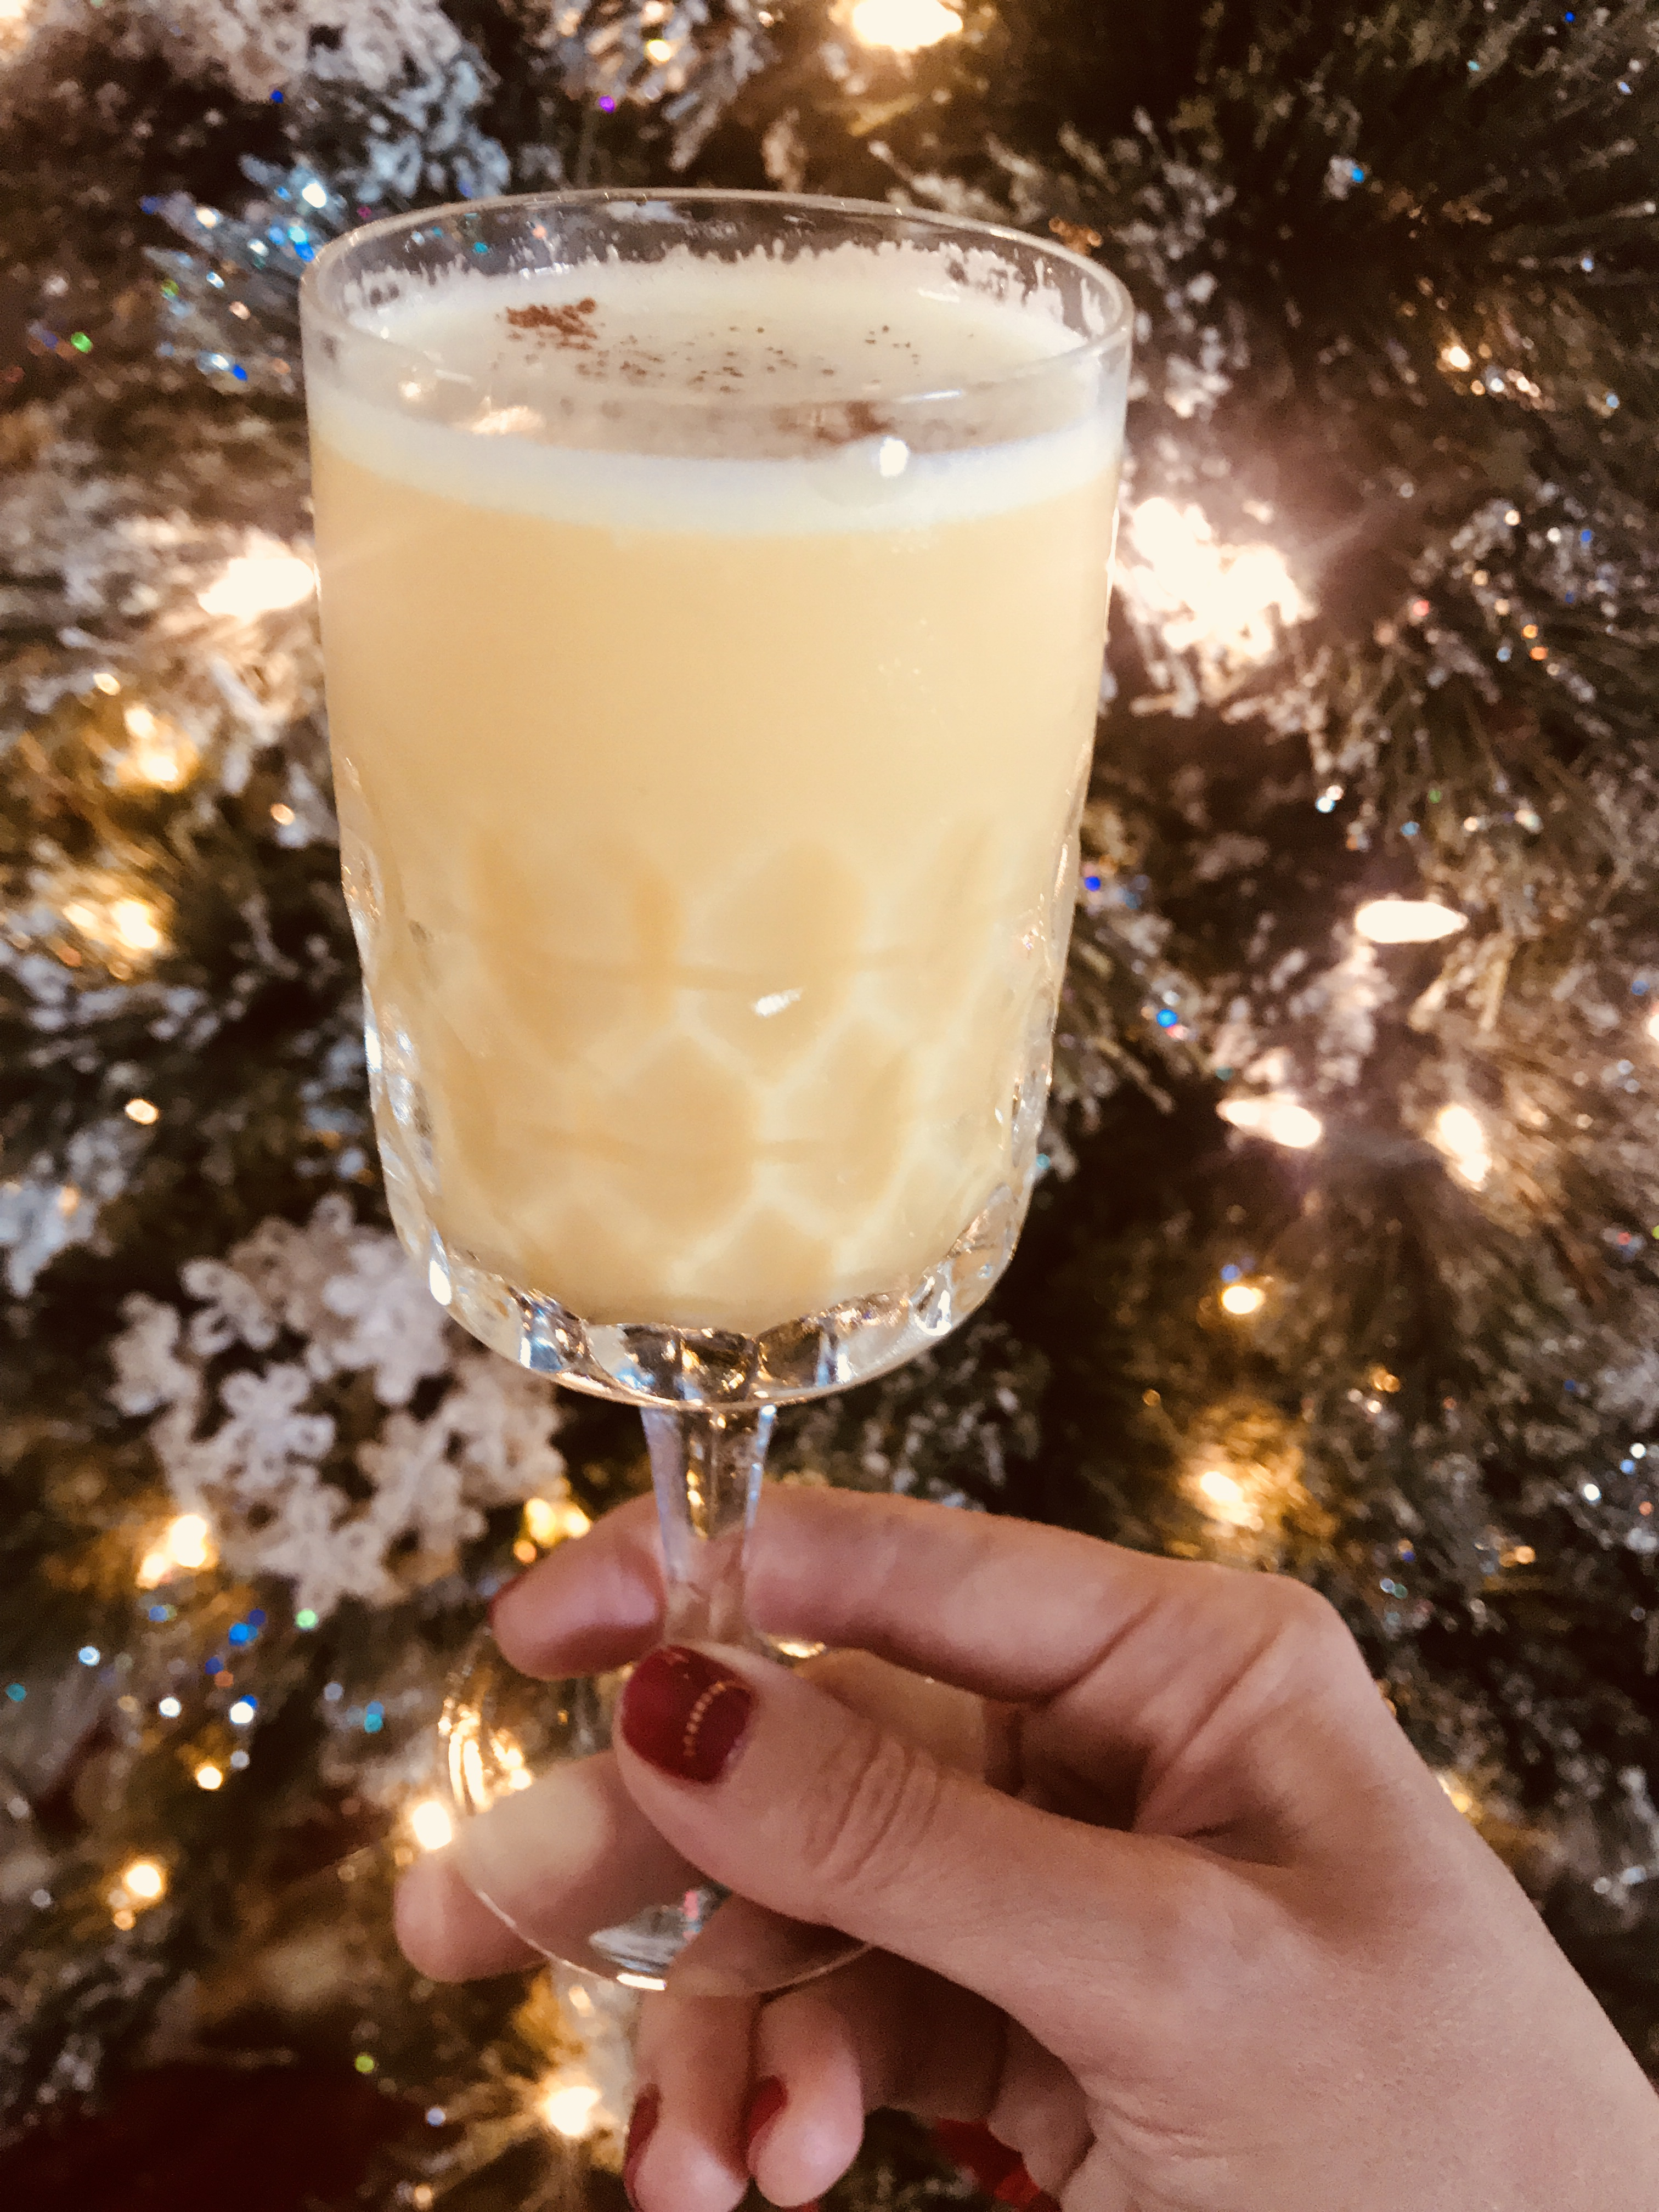 Georgette Moger photographed her New Year Noche Buena cocktail